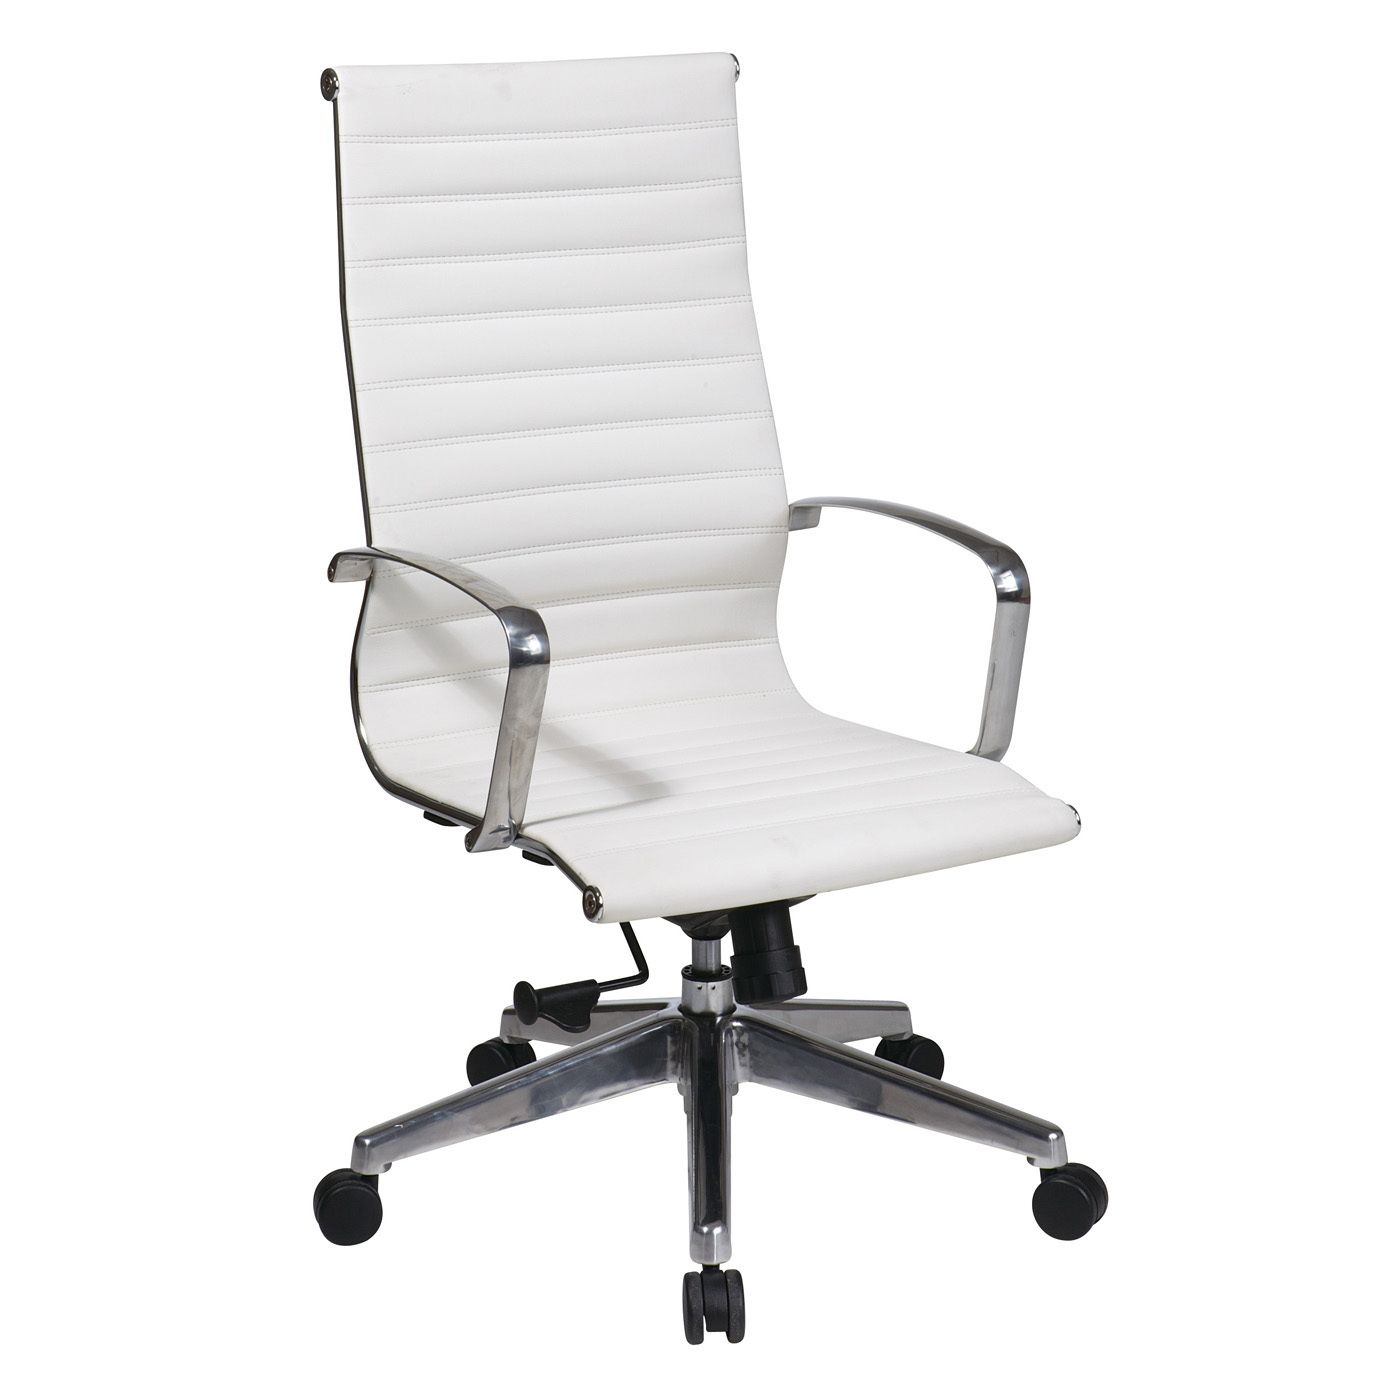 2019 Office Chair Canada Modern Home Furniture Check More At Http